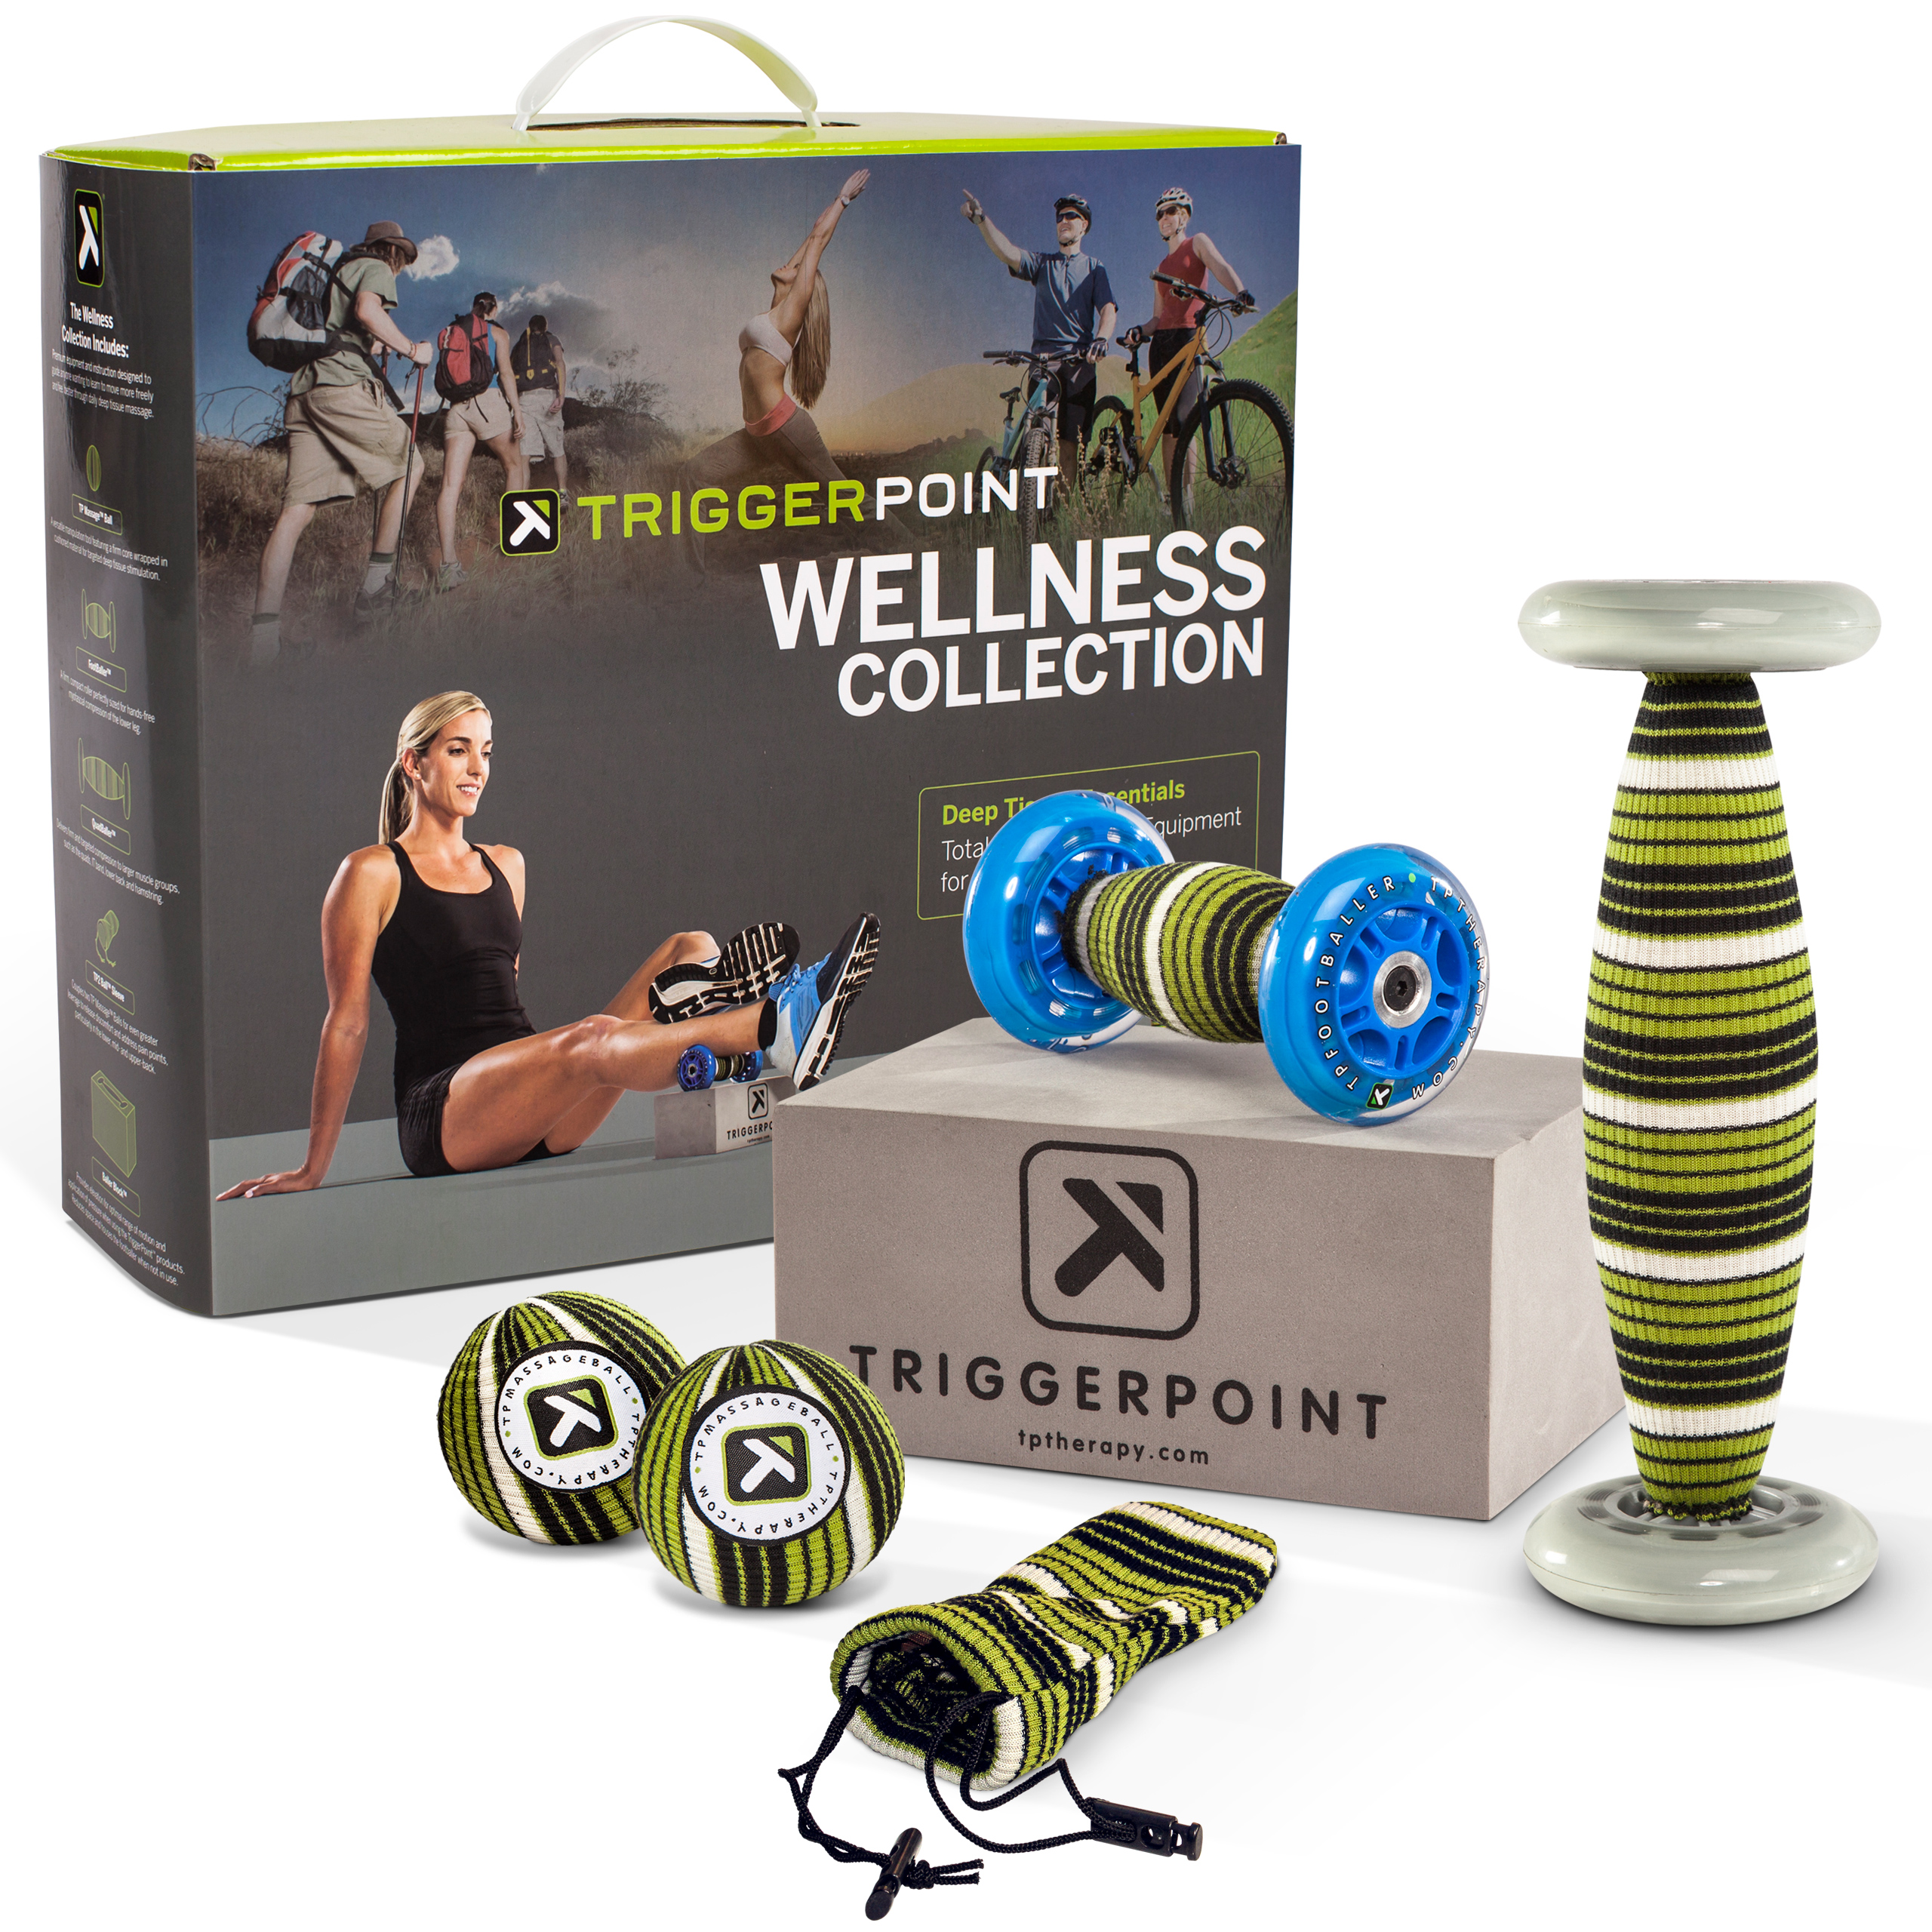 Trigger Point Wellness Kit | Træningsmåtter og svedcover